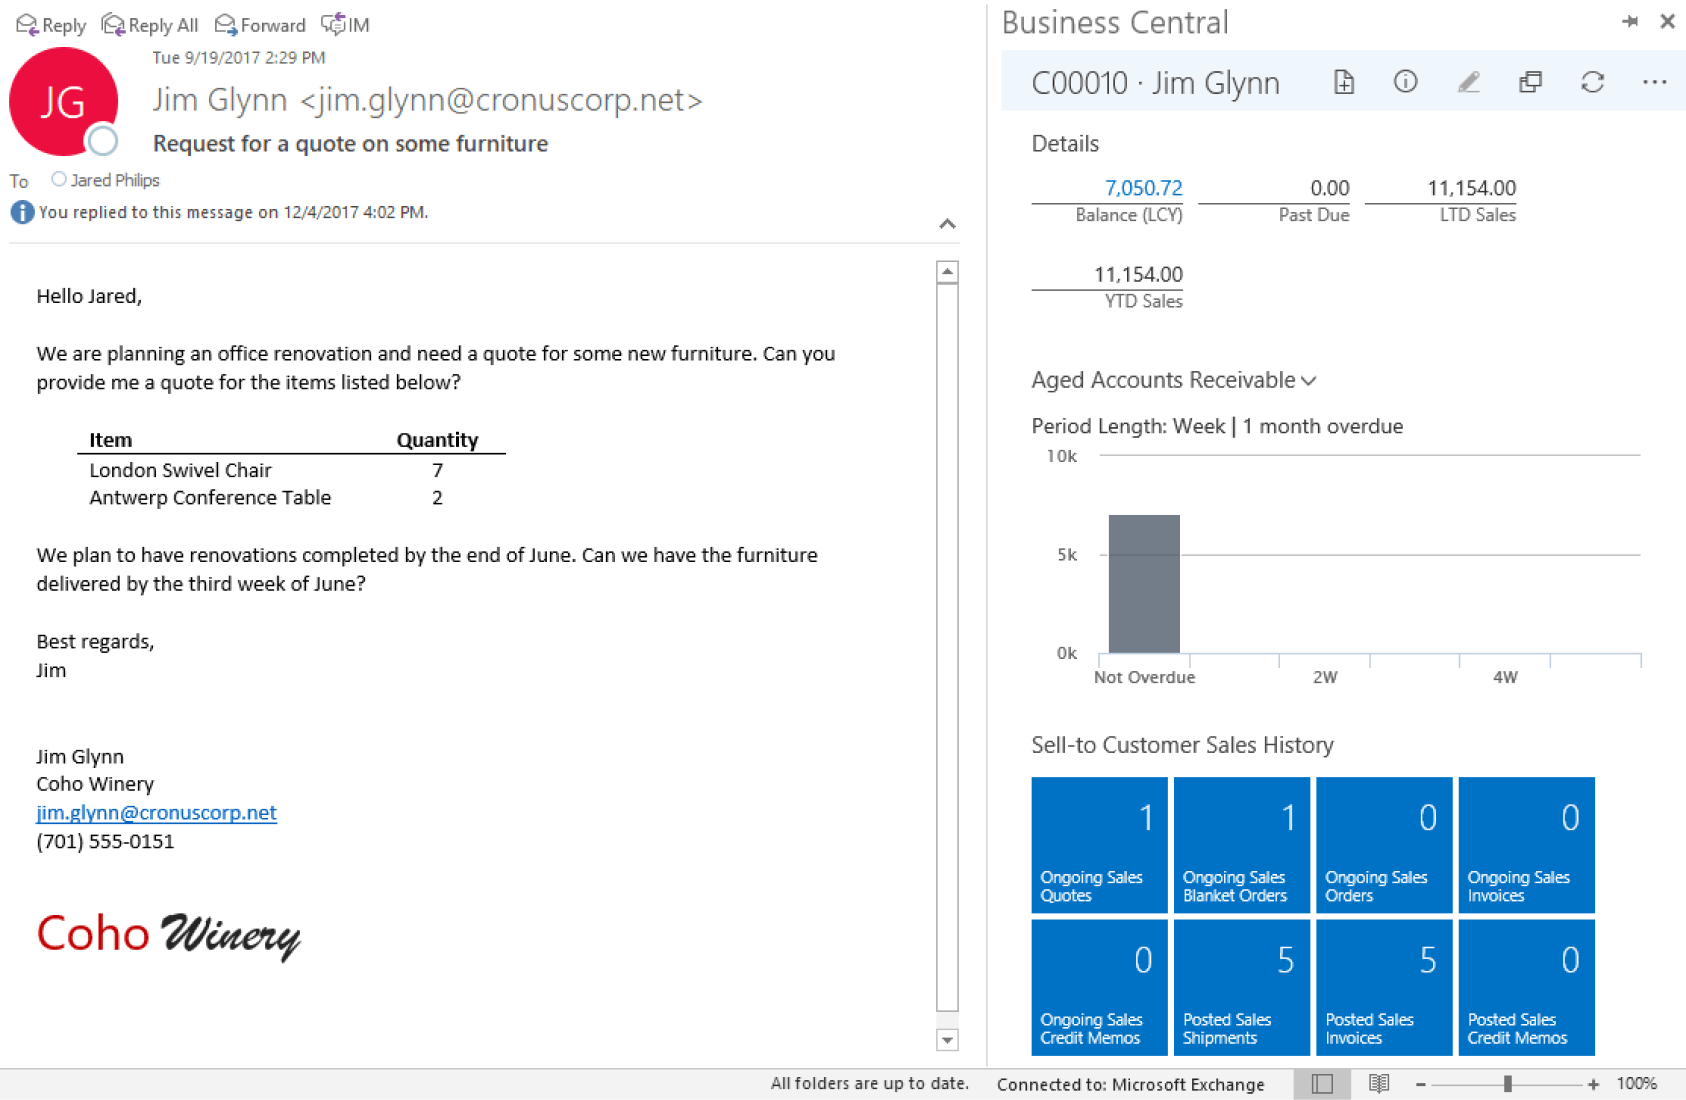 Microsoft Dynamics 365 Business Central customer interaction tracking